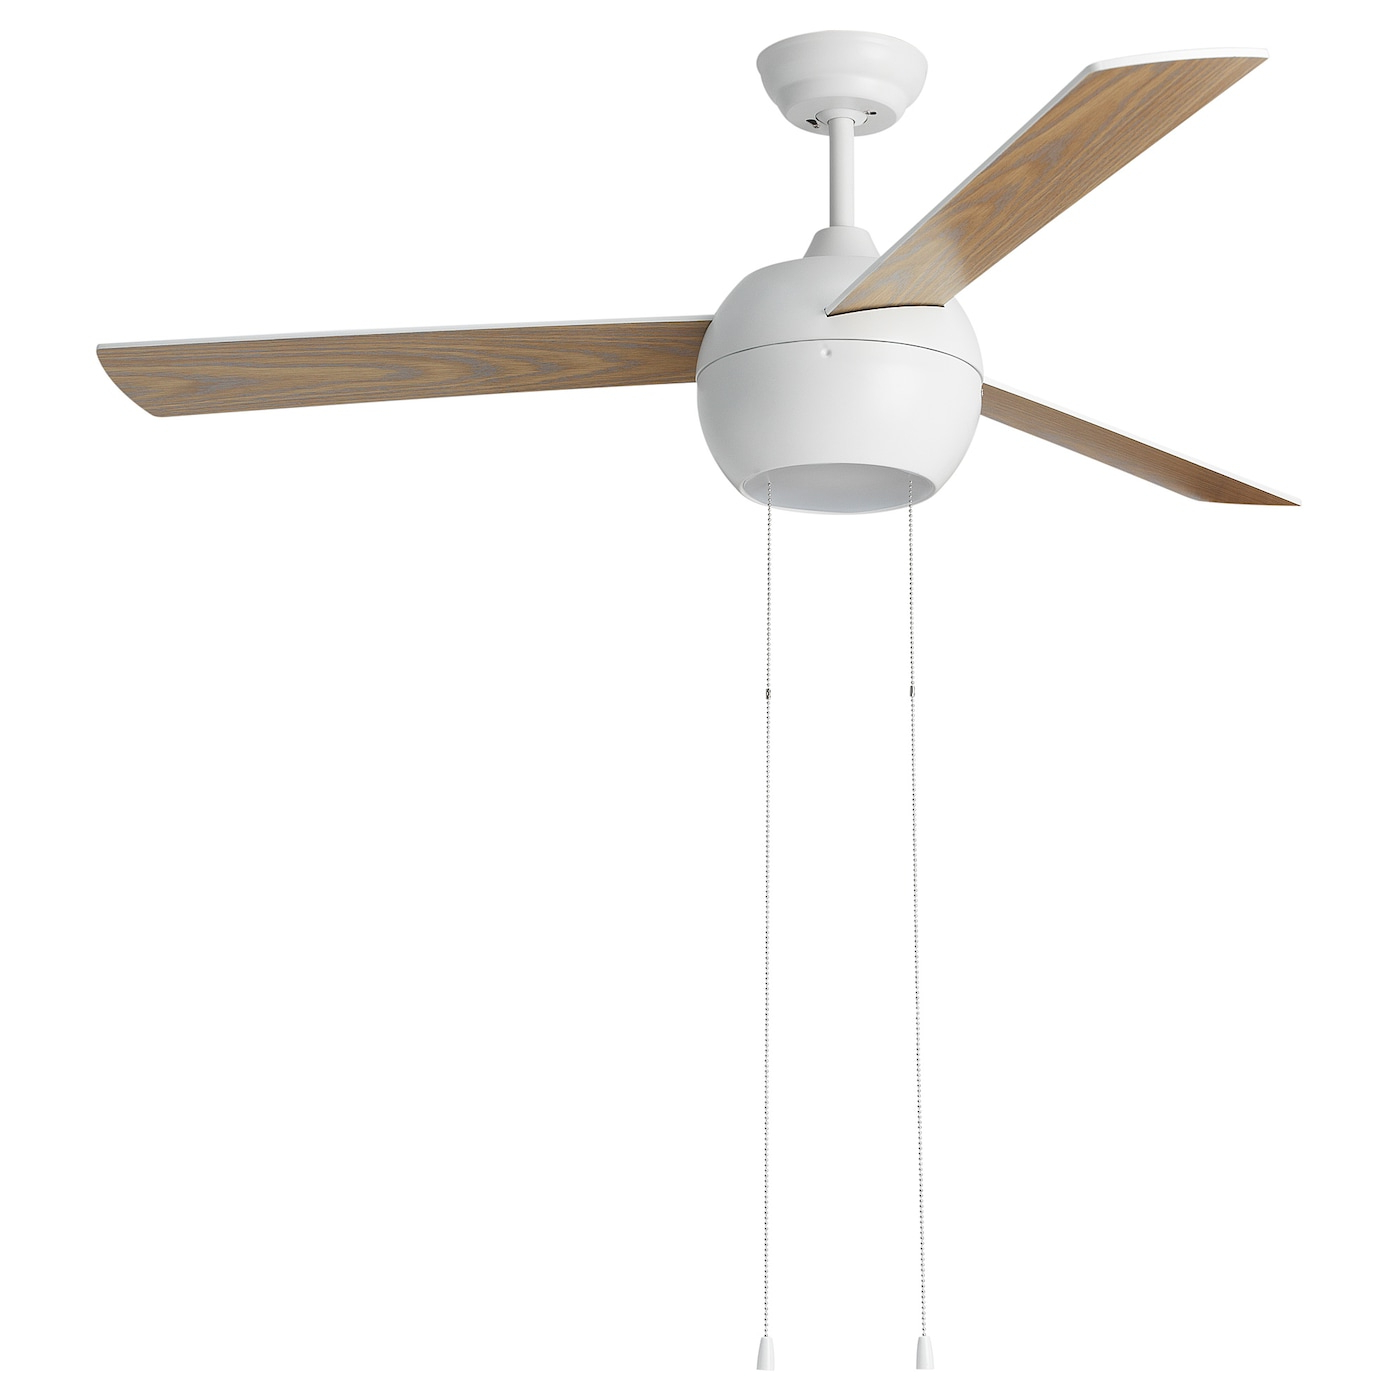 Stormvind – 3 Blade Ceiling Fan With Light For Well Known Mesa 5 Blade Ceiling Fans (View 11 of 20)